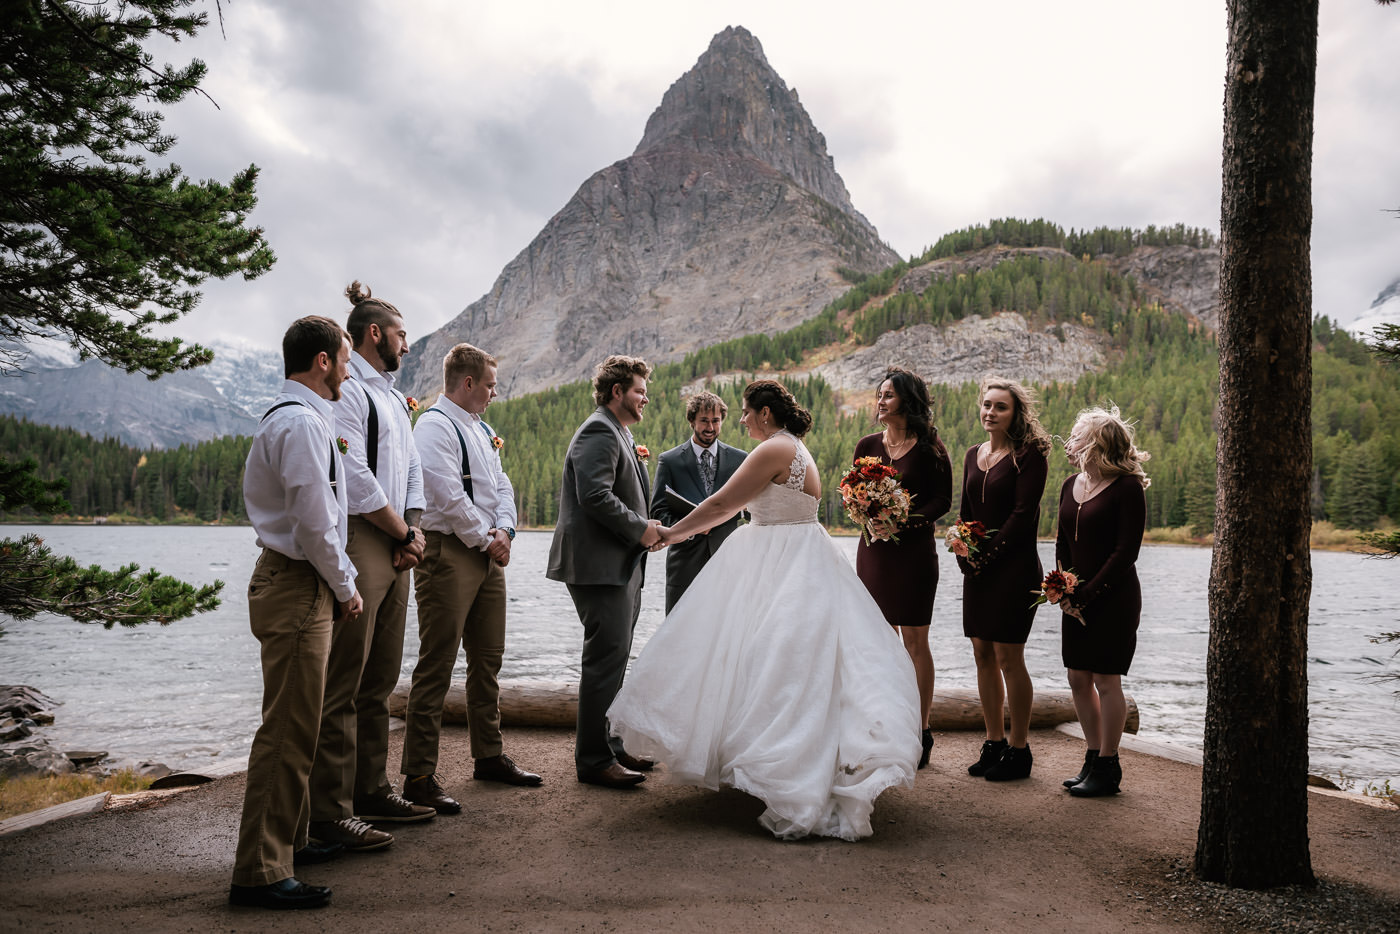 Glacier National Park elopement photogrpaher captures a couples touching ceremony on the shores of Swiftcurrent Lake in Many Glacier.